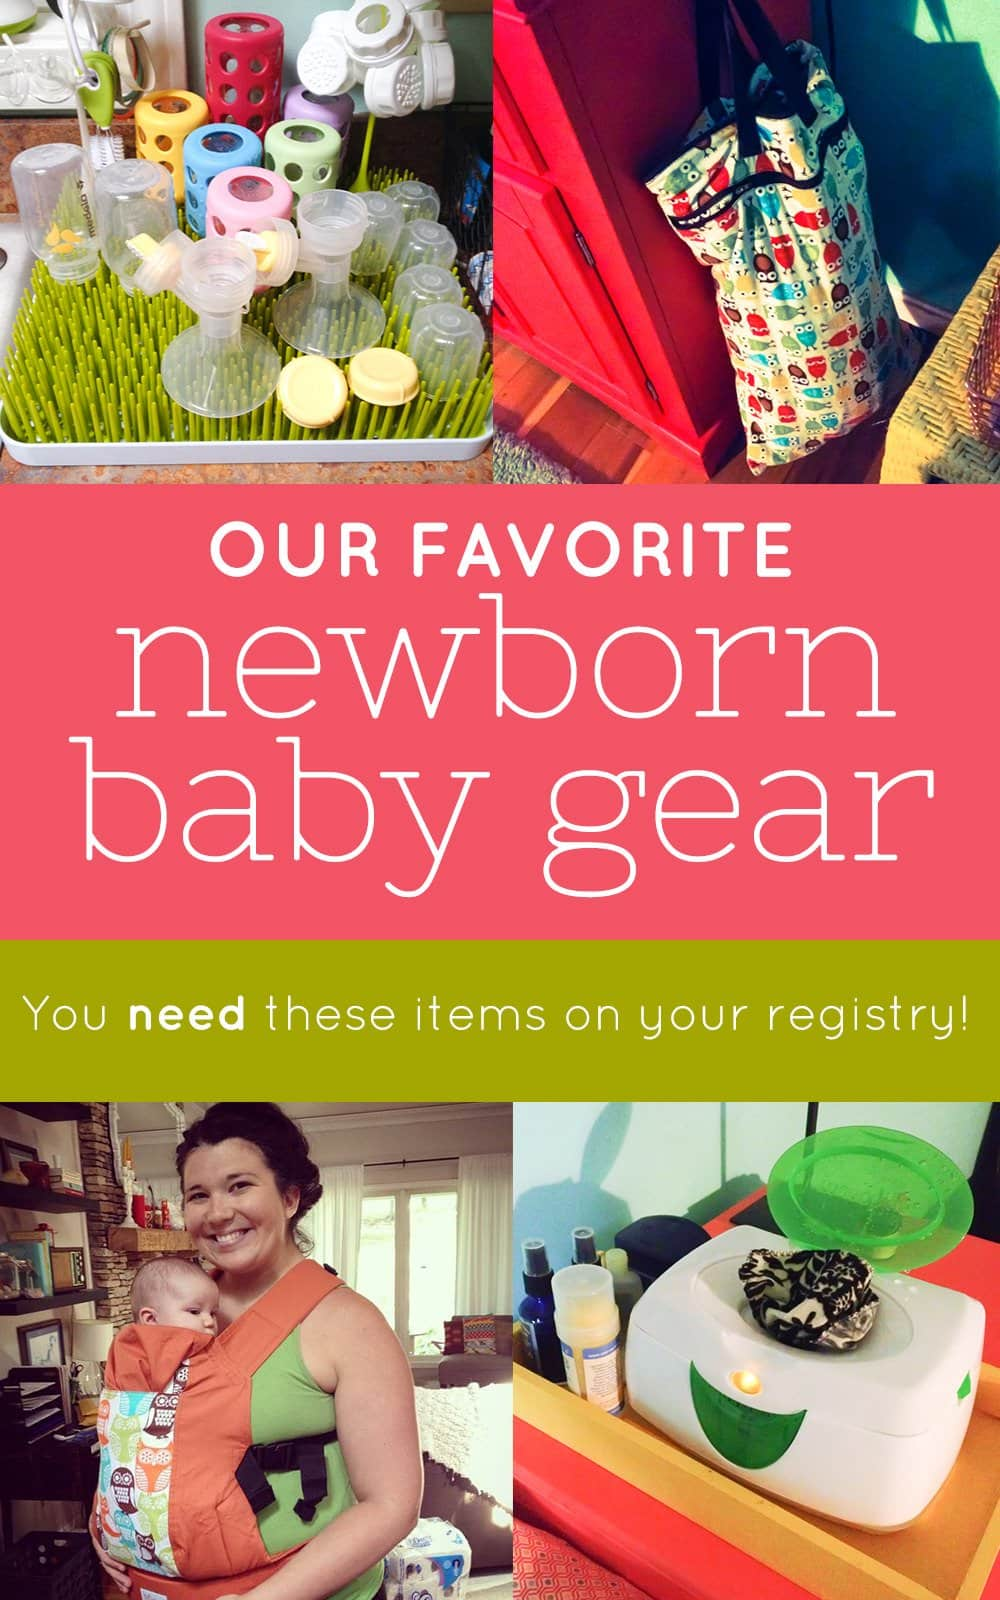 Our Favorite Newborn Baby Gear